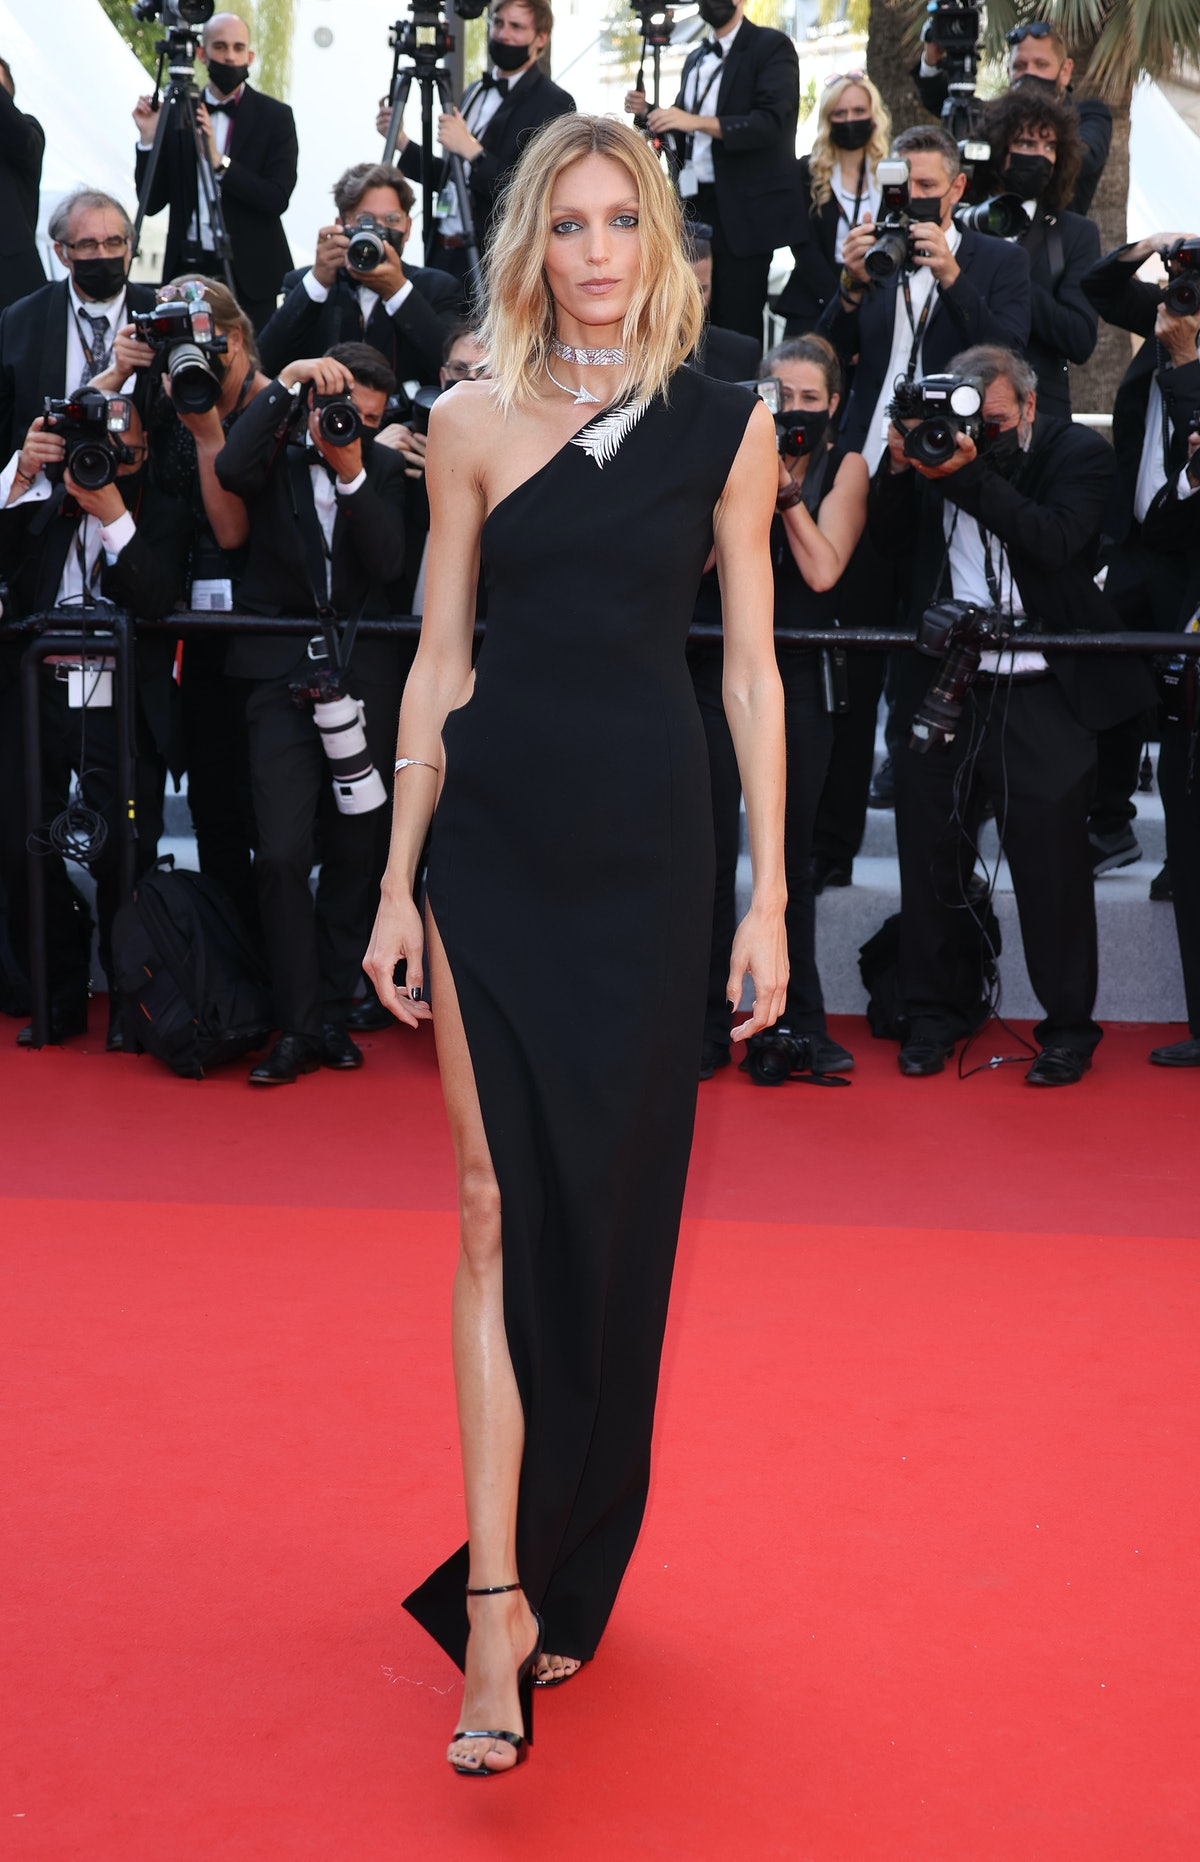 """CANNES, FRANCE - JULY 09: Anja Rubik attends the """"Benedetta"""" screening during the 74th annual Cannes Film Festival on July 09, 2021 in Cannes, France. (Photo by Mike Marsland/WireImage)"""